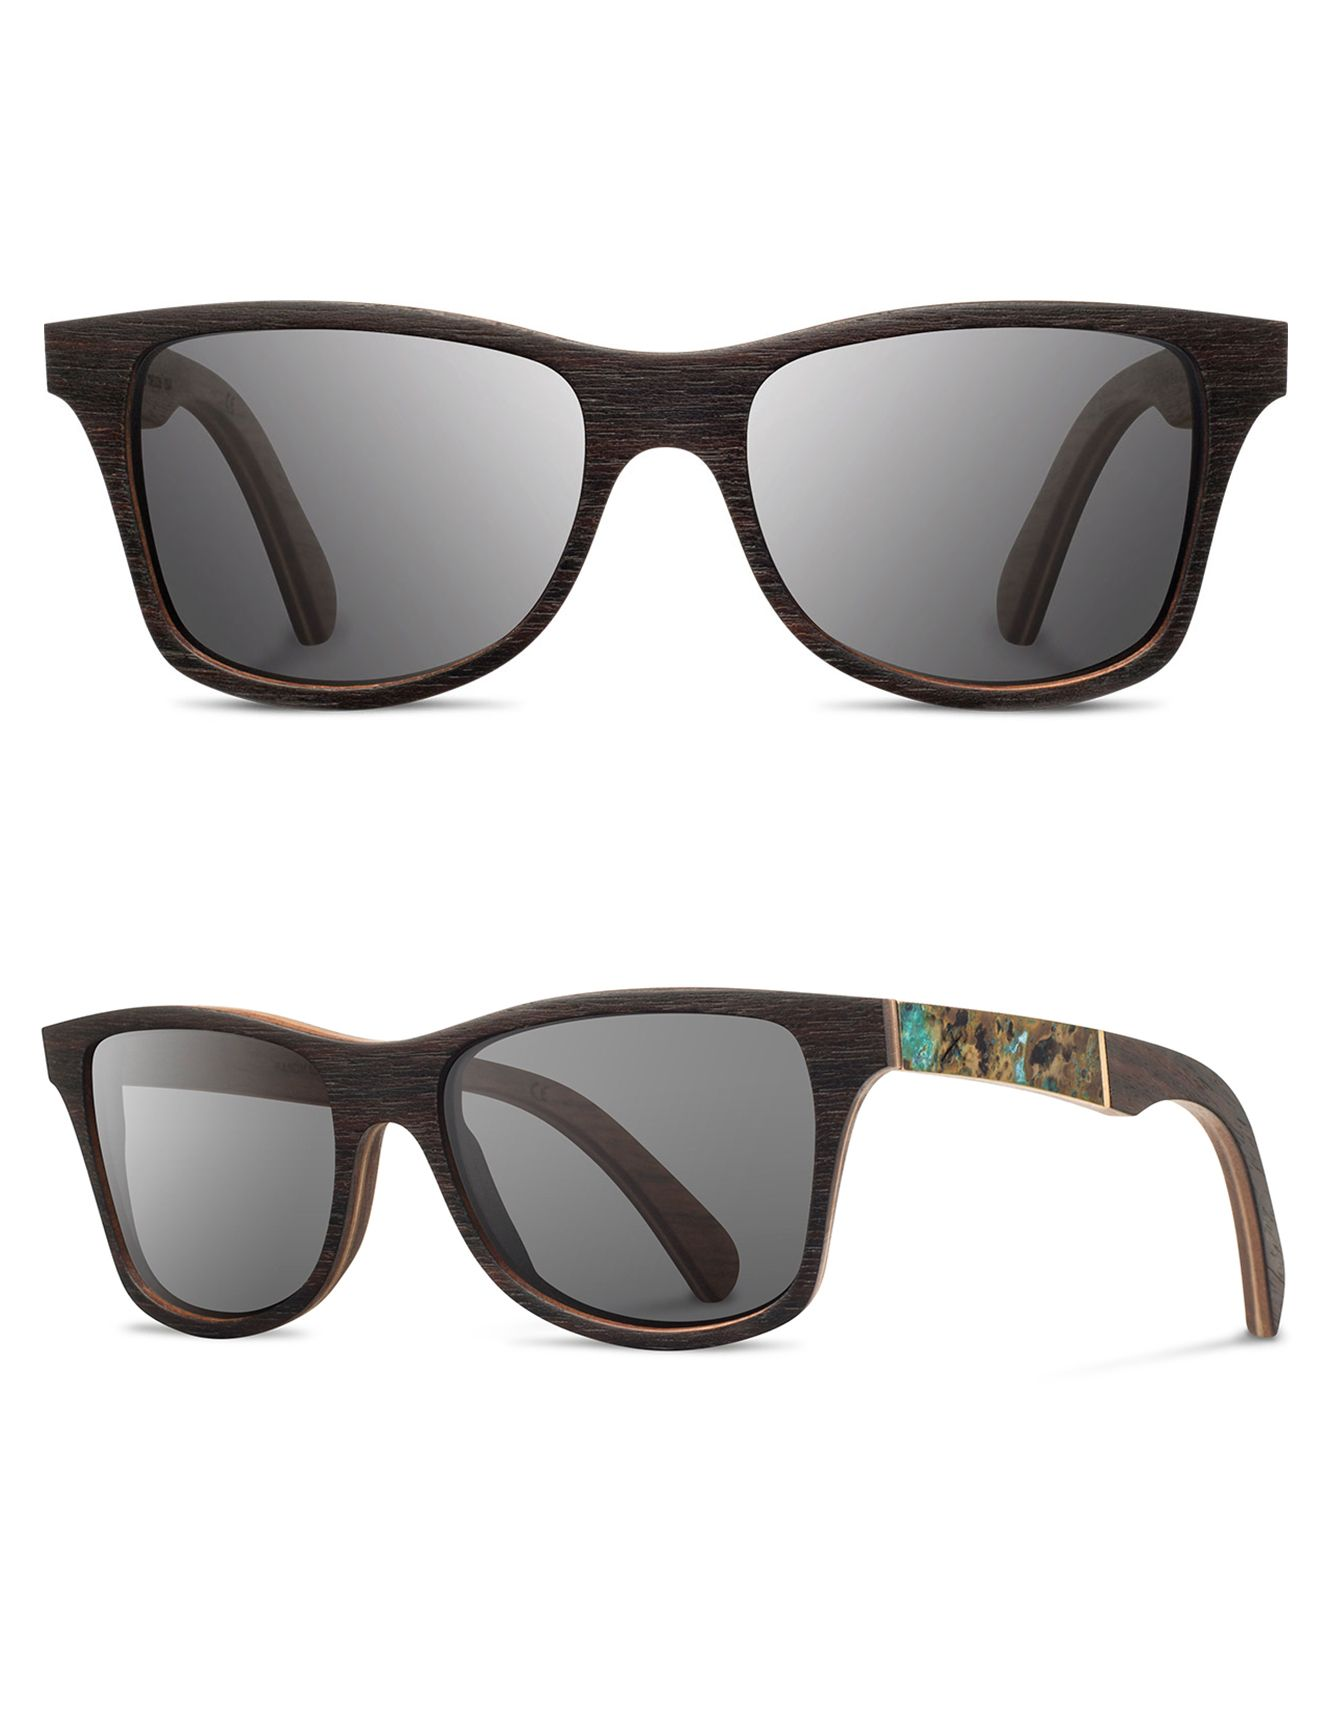 e467d31701 The Canby Select Oxidized by Shwood Eyewear.